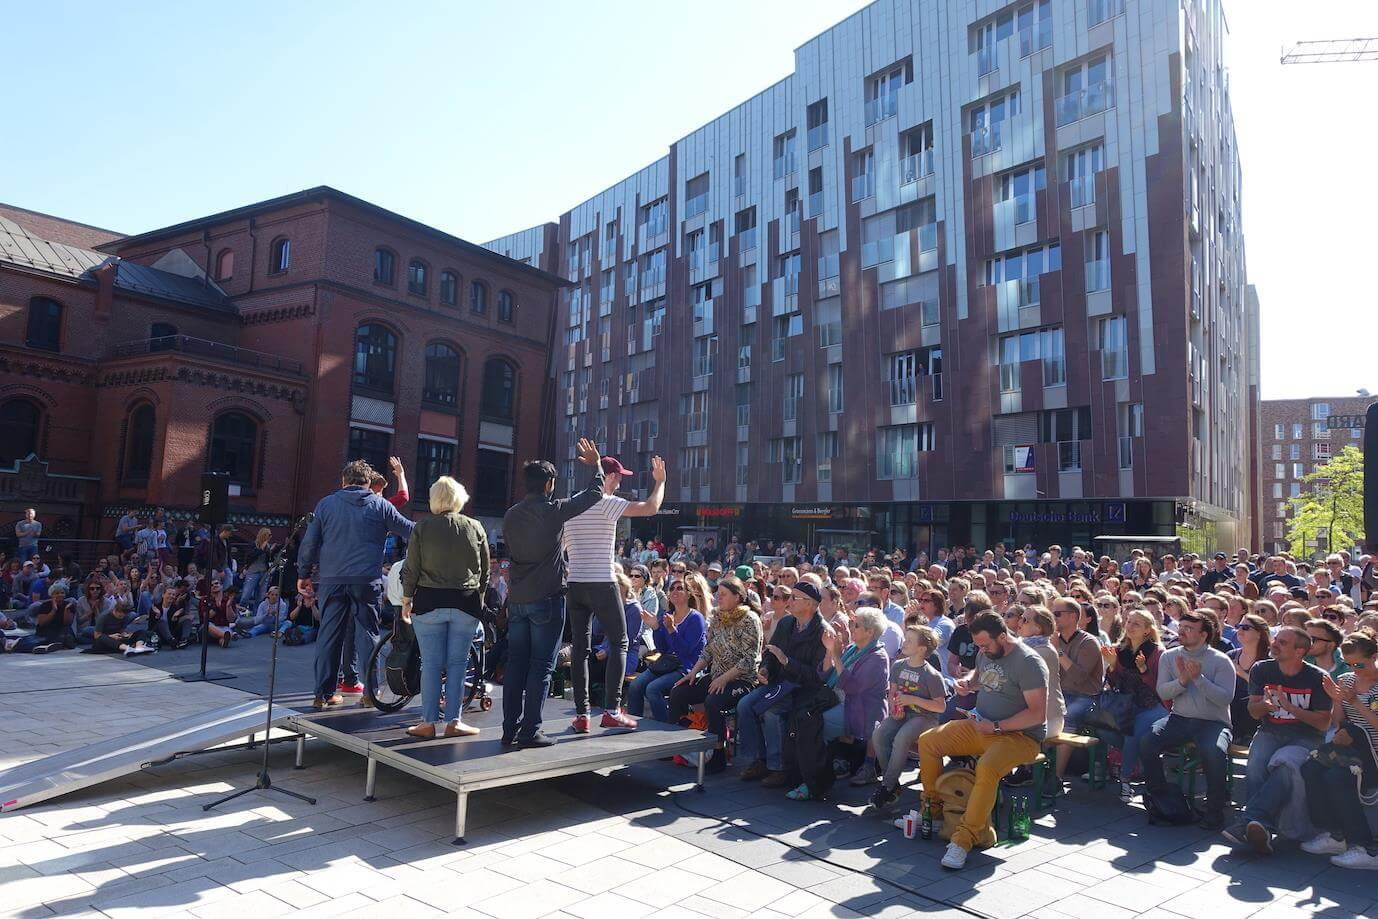 stand up comedy mal in anderer umgebung komm in die hafencity heute in hamburg. Black Bedroom Furniture Sets. Home Design Ideas